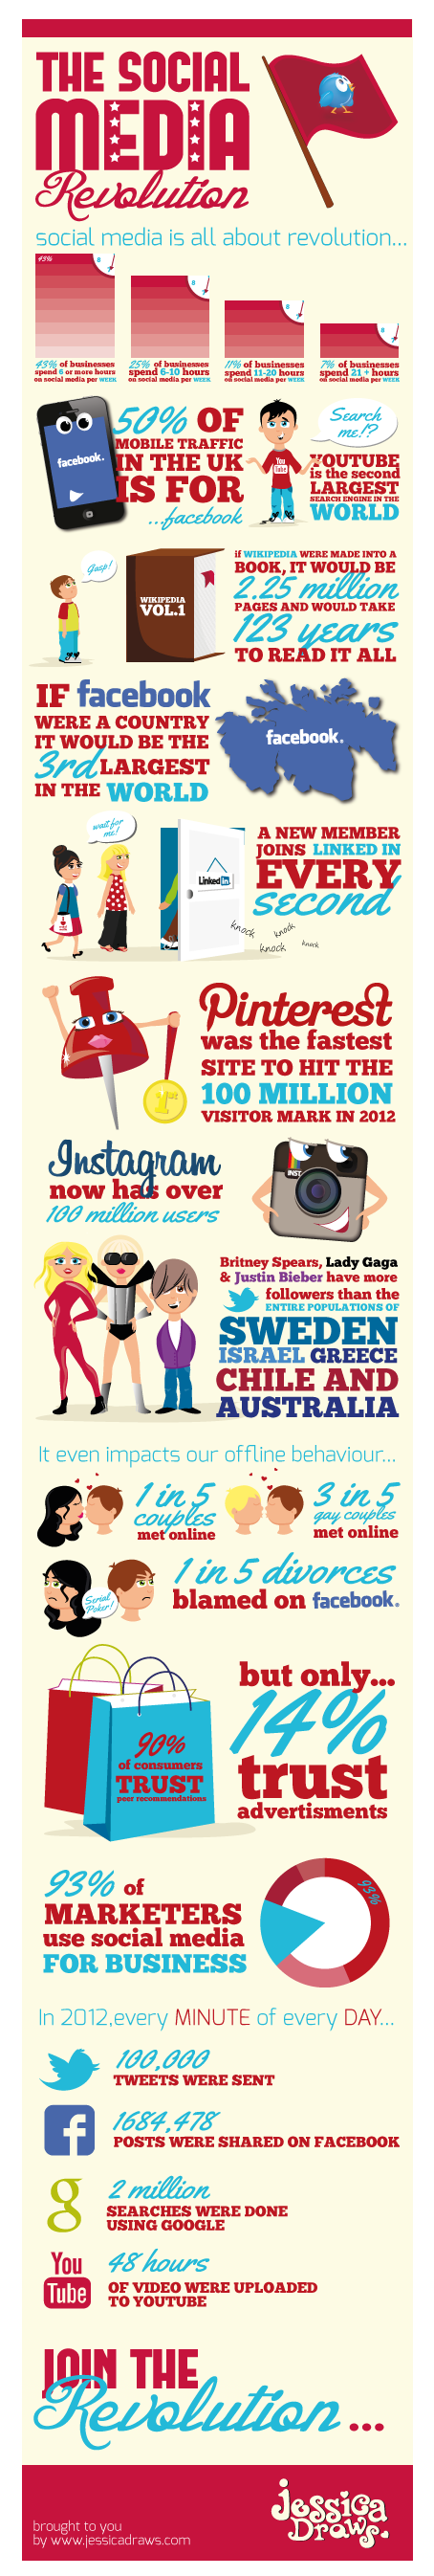 the-social-media-revolution-infographic